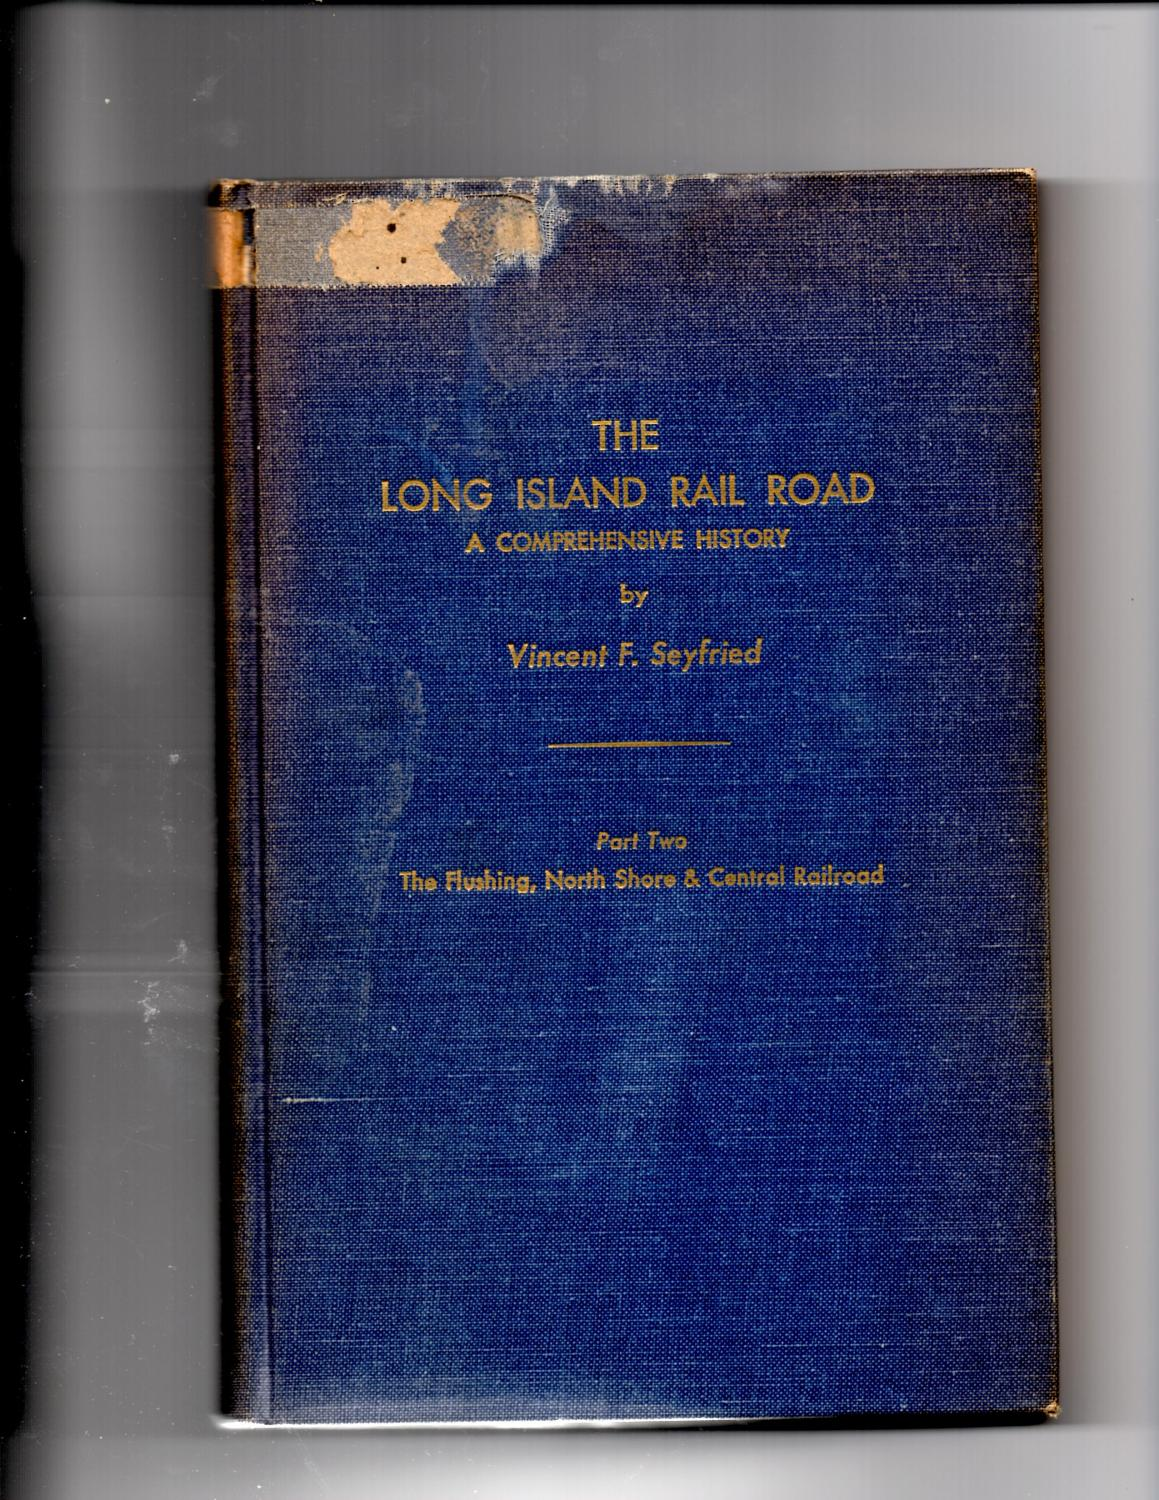 The Long Island Rail Road a Comprehensive History Par Two The Flushing, North Shore & Central ...